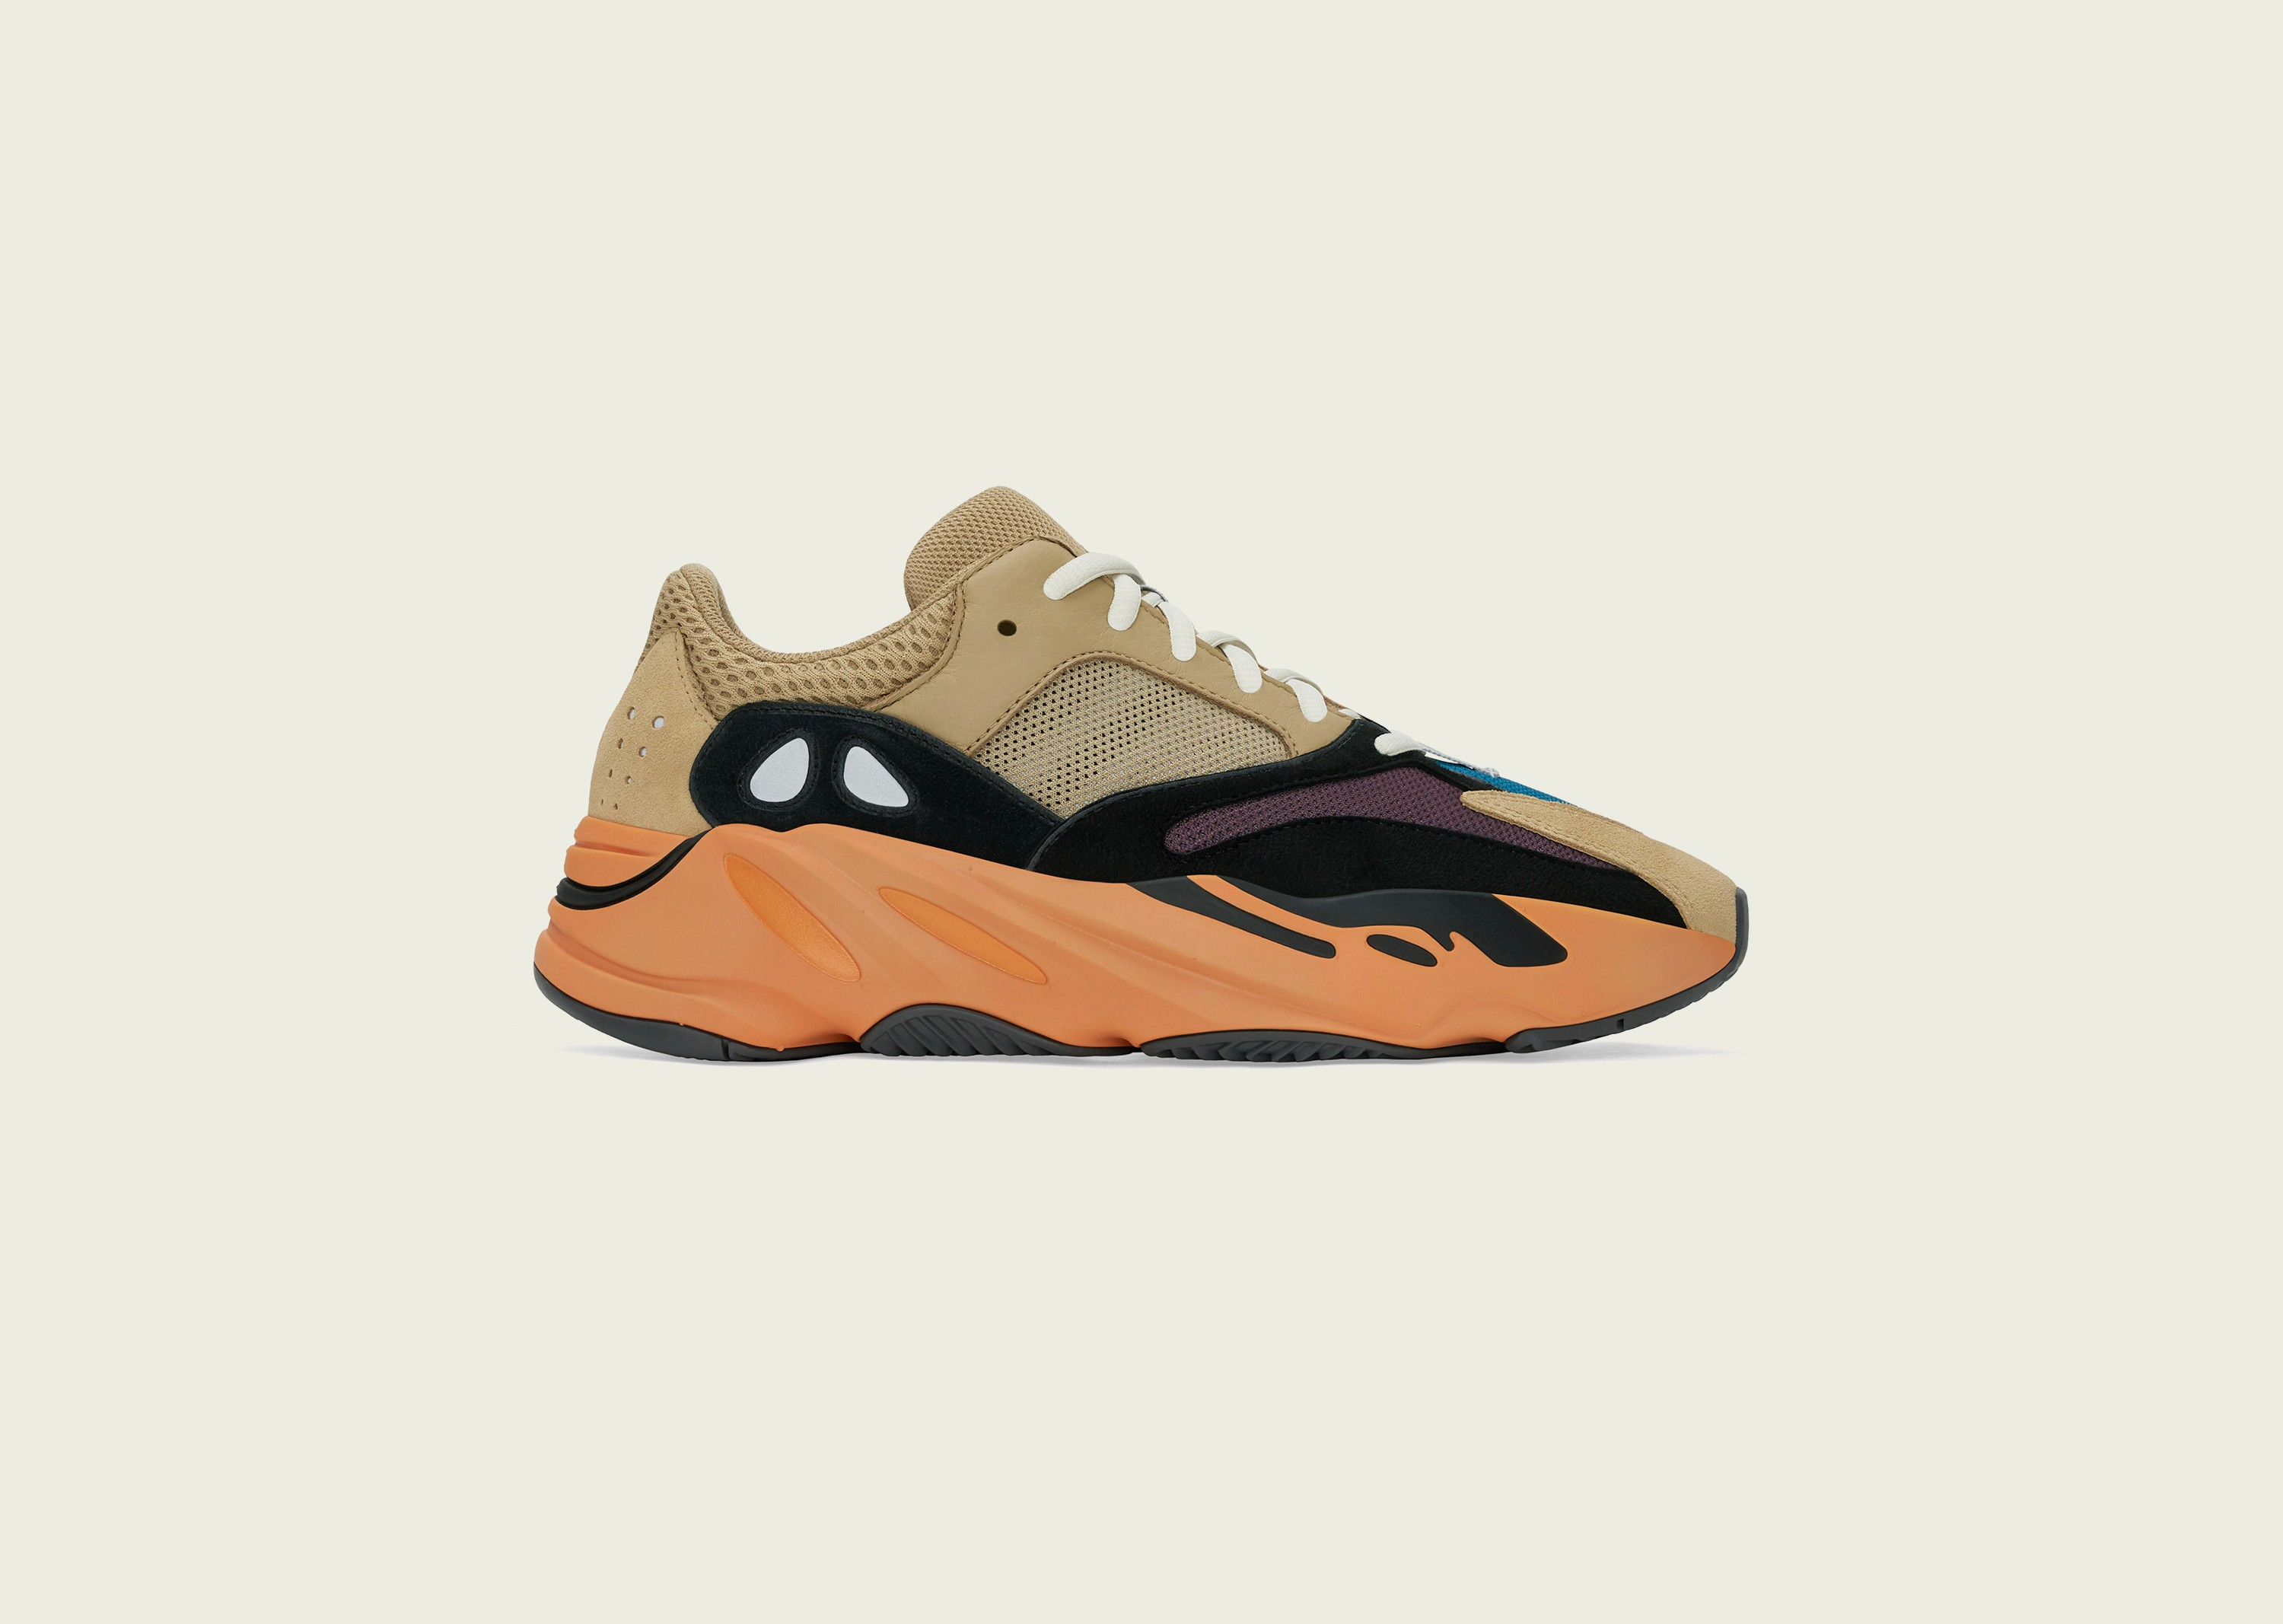 enflame700_blog_0001_YEEZY_BOOST_700_ENFLAME_AMBER_Right_Social_FB_2500x1878